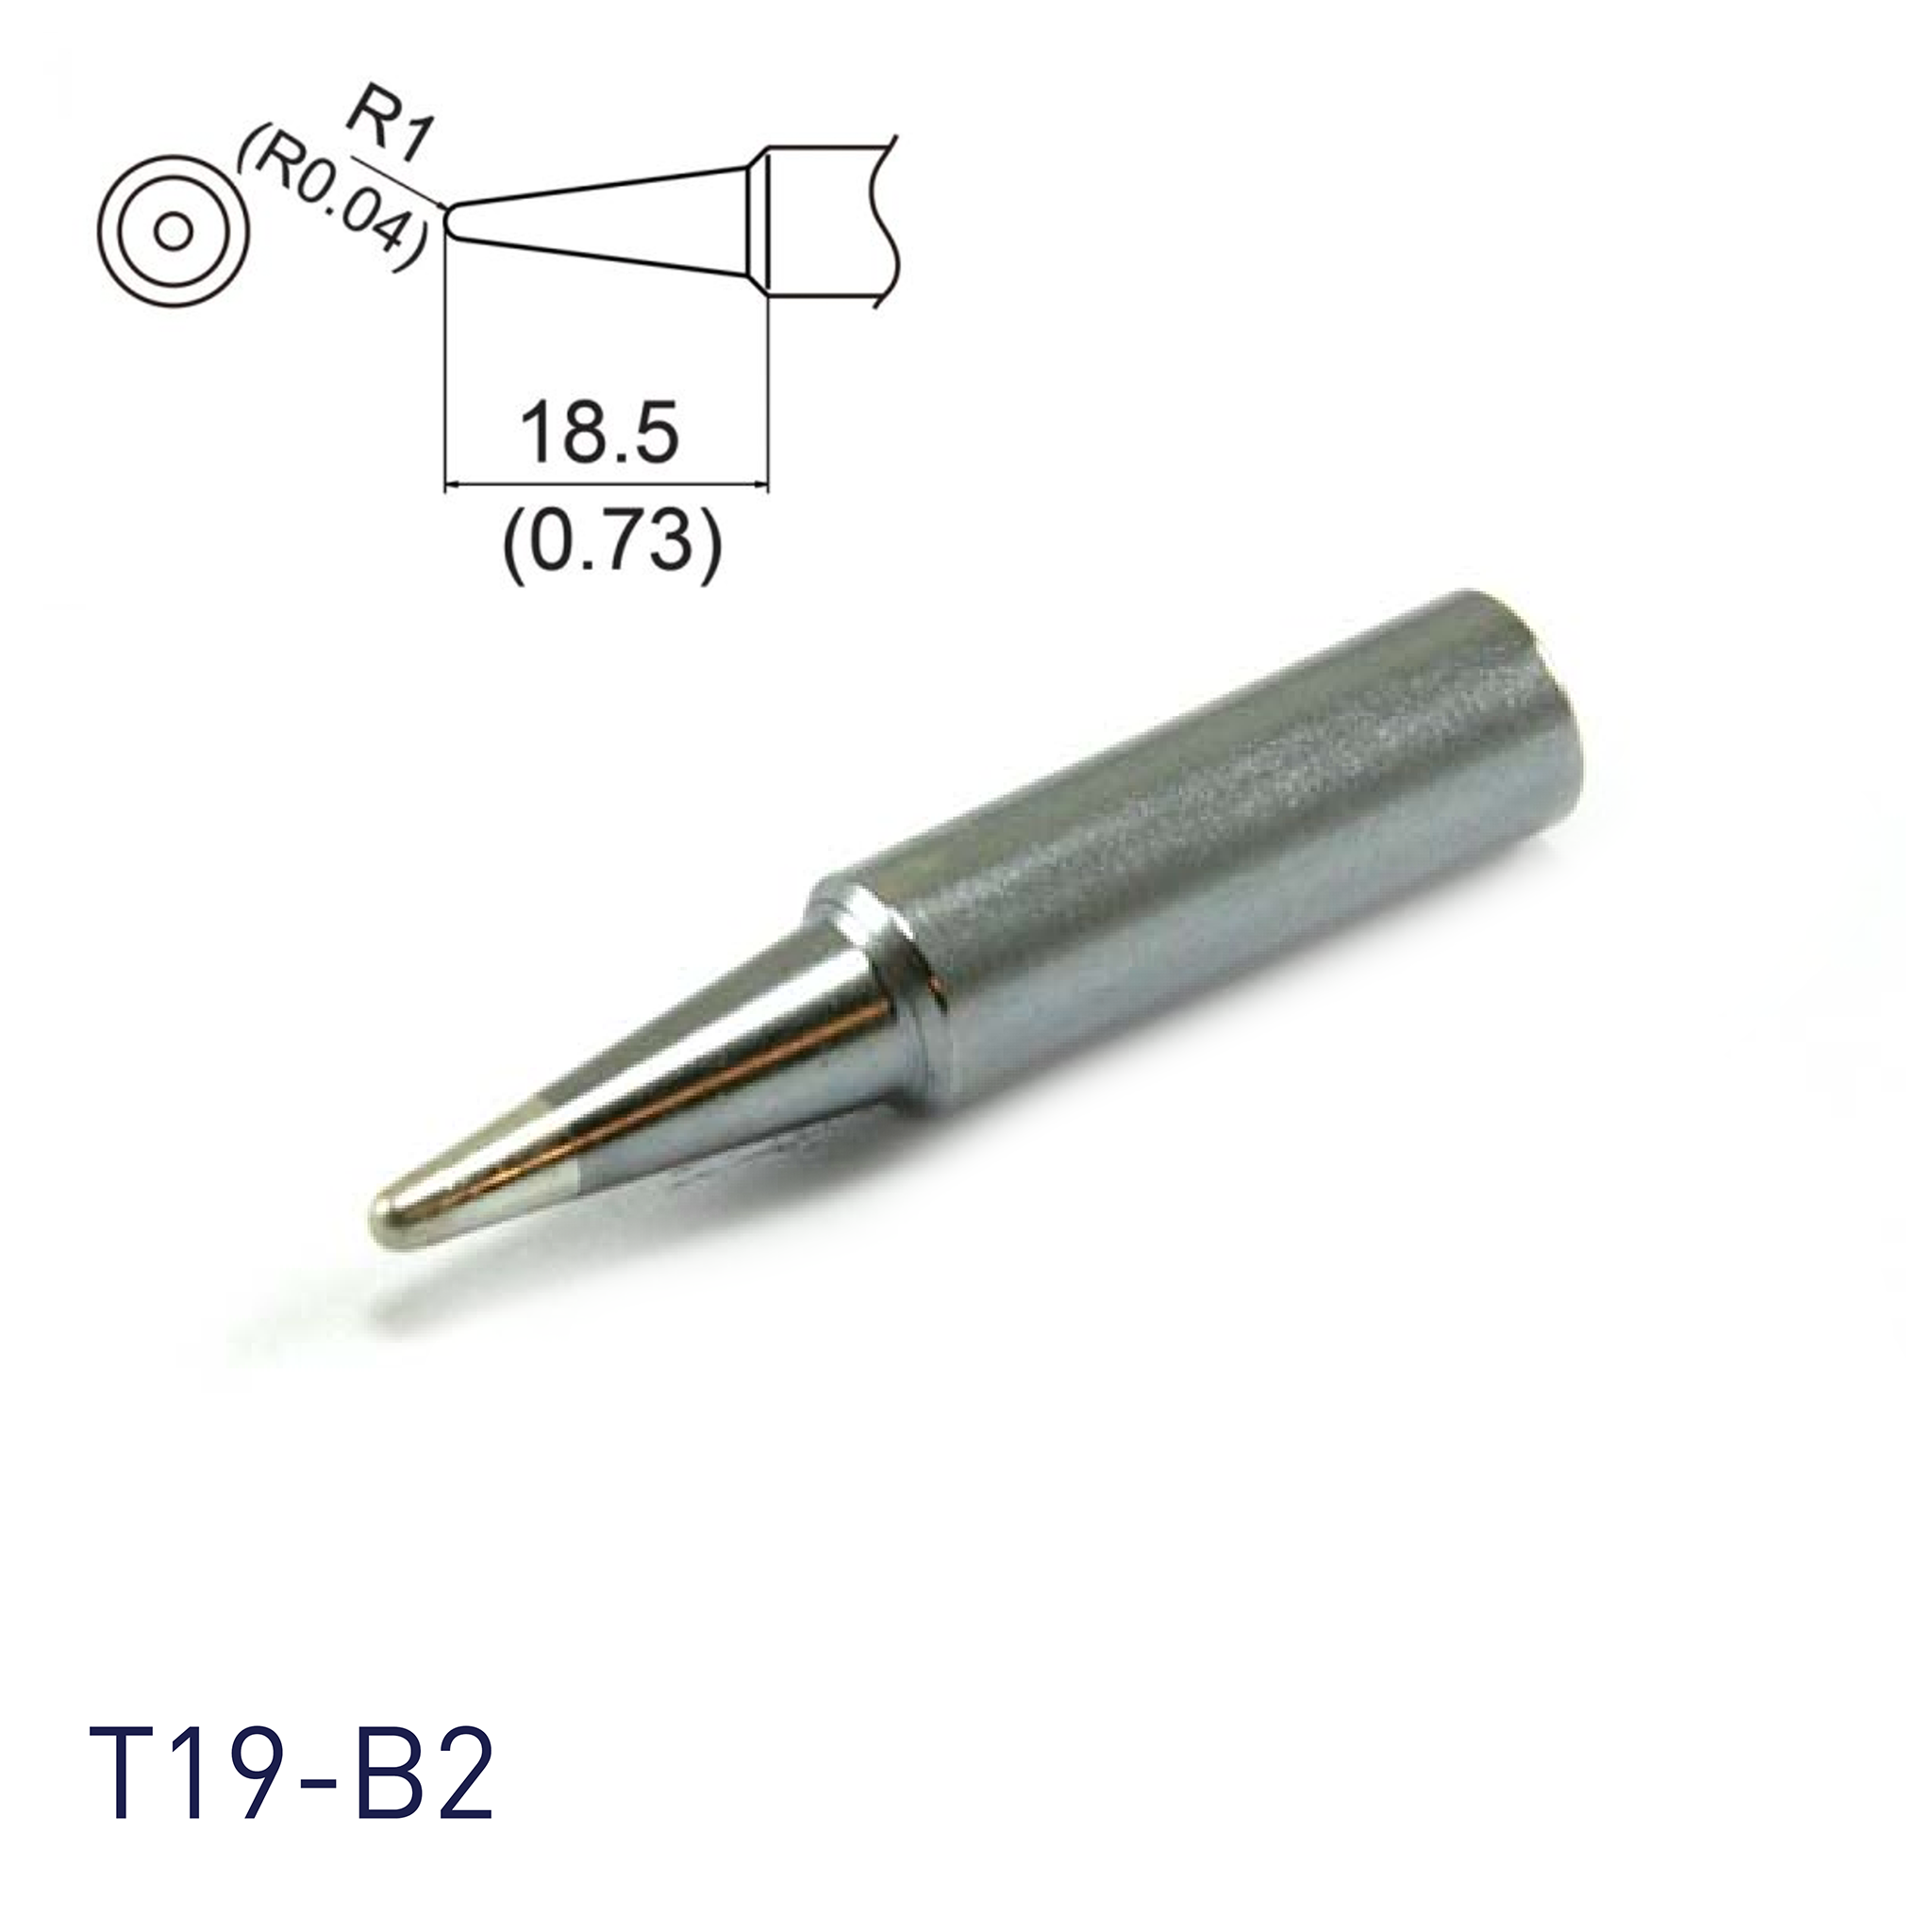 T19-B2 - Hakko Products Pte Ltd